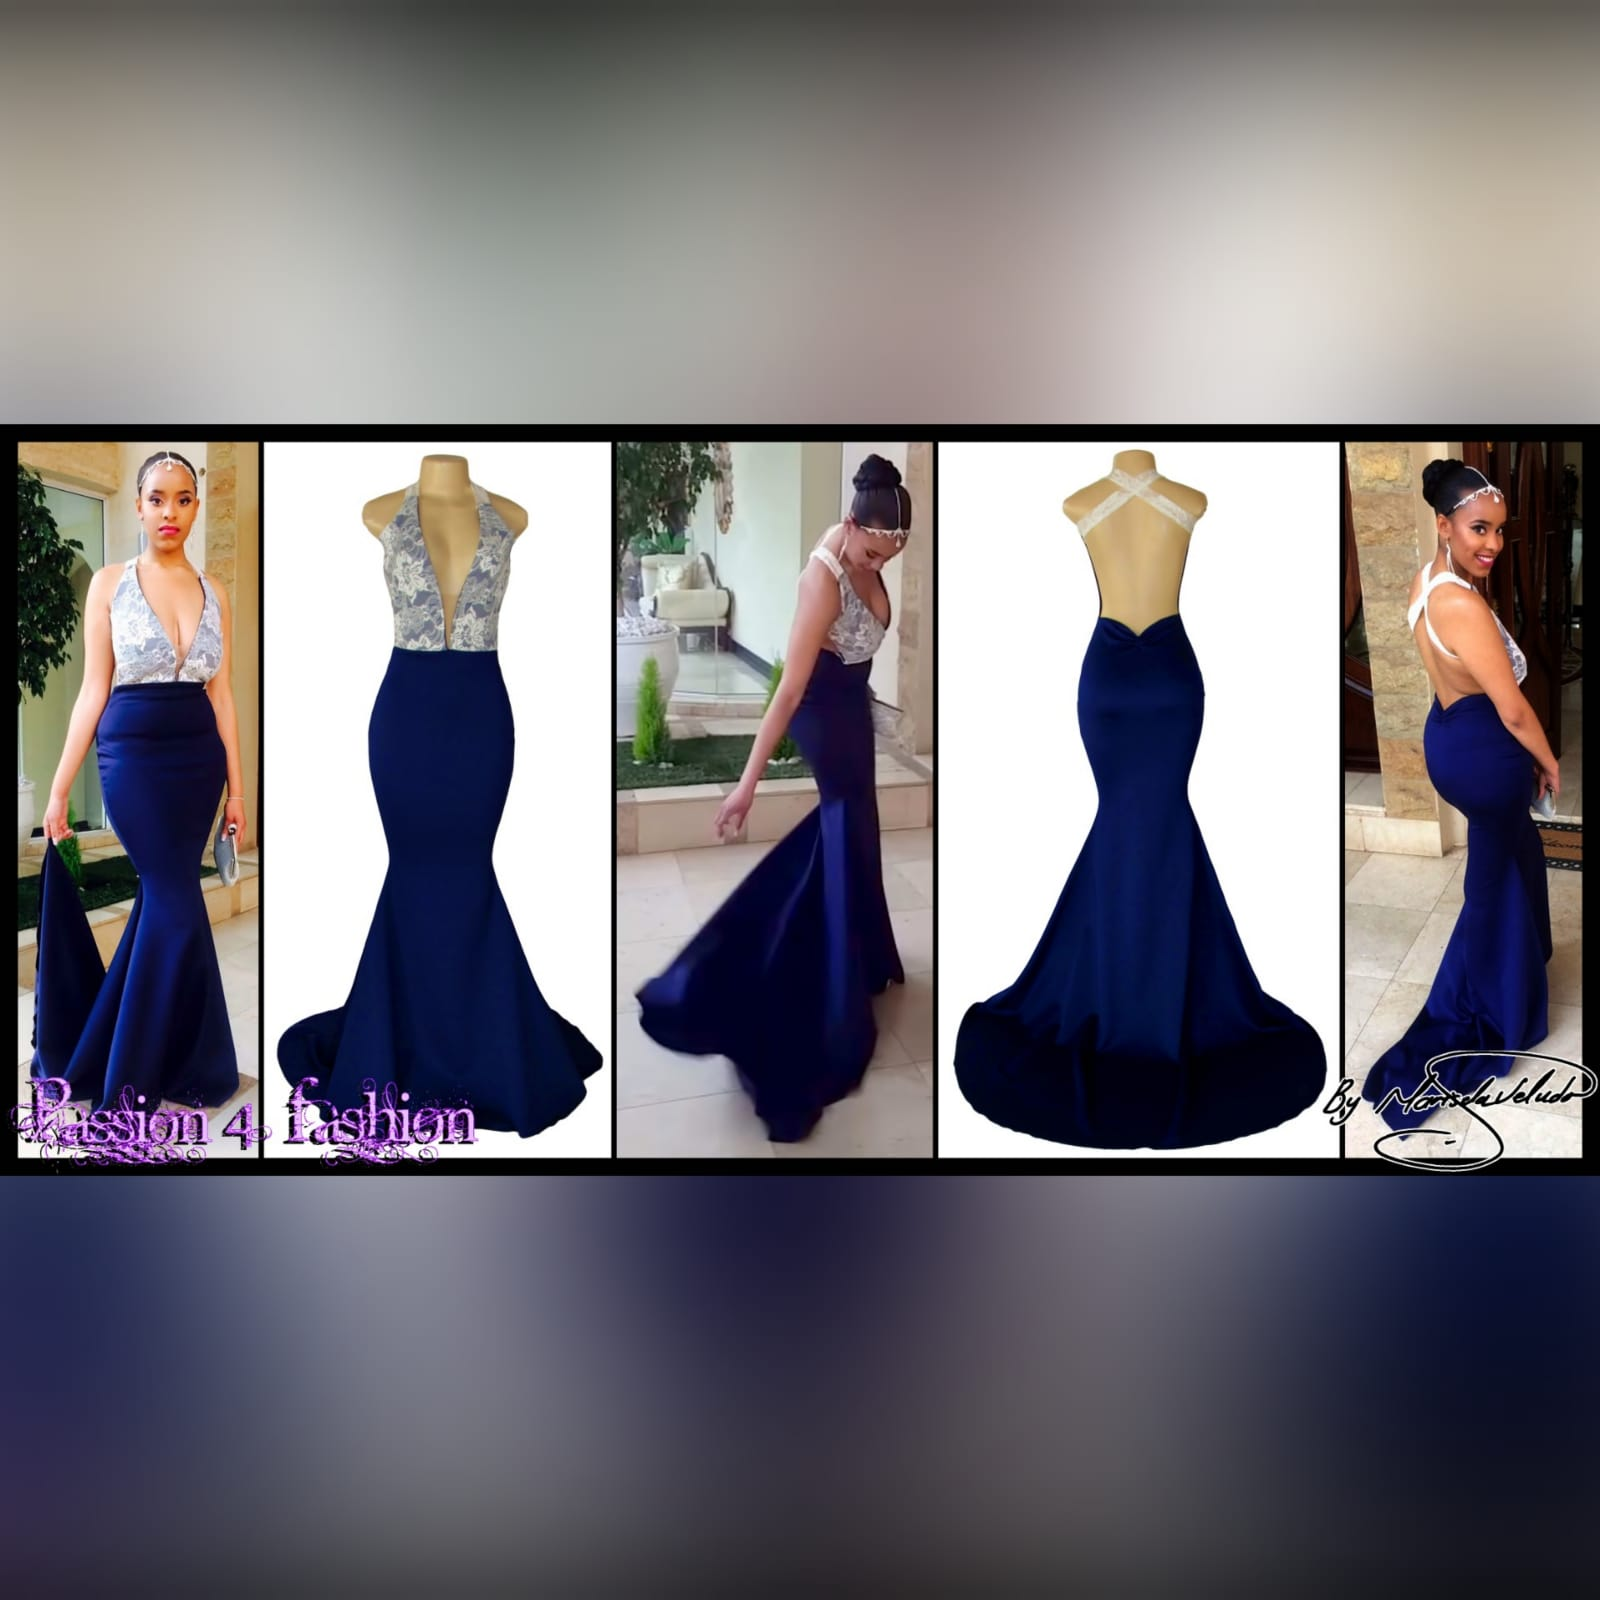 Navy blue & white lace plunging neckline soft mermaid sexy matric dance dress 6 navy blue & white lace plunging neckline soft mermaid sexy matric dance dress with an open back and crossed lace back straps with a train.